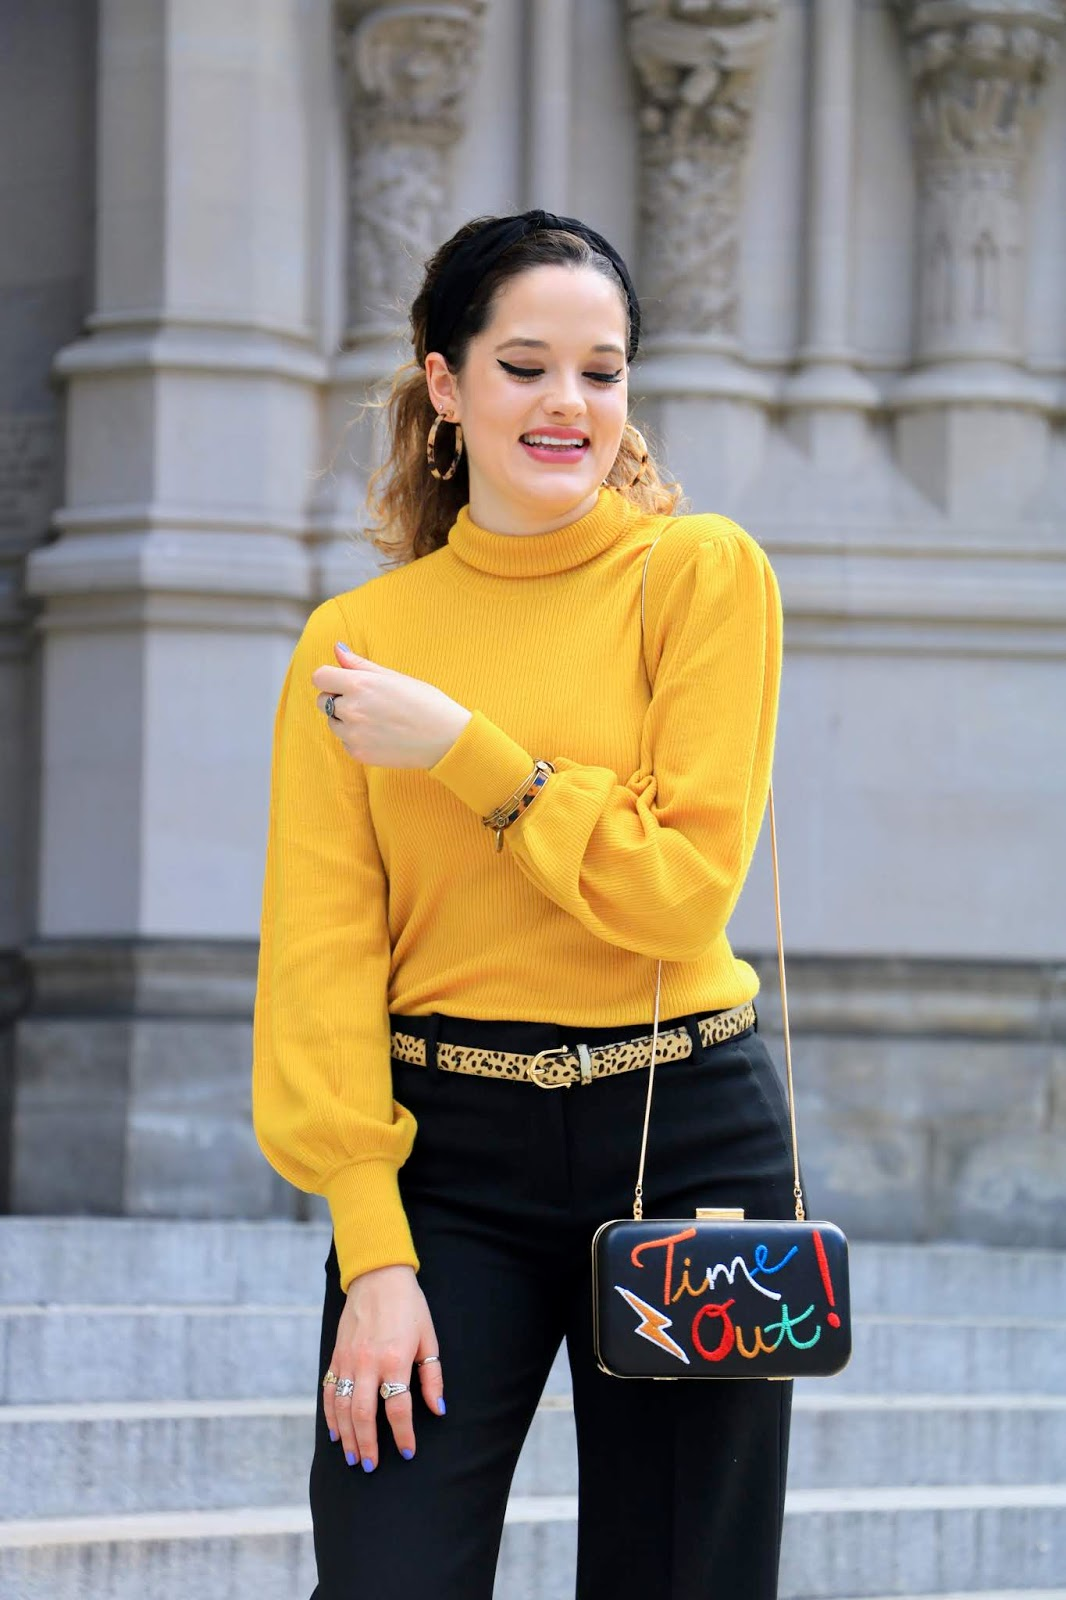 Nyc fashion blogger Kathleen Harper wearing a yellow turtleneck from Jcrew